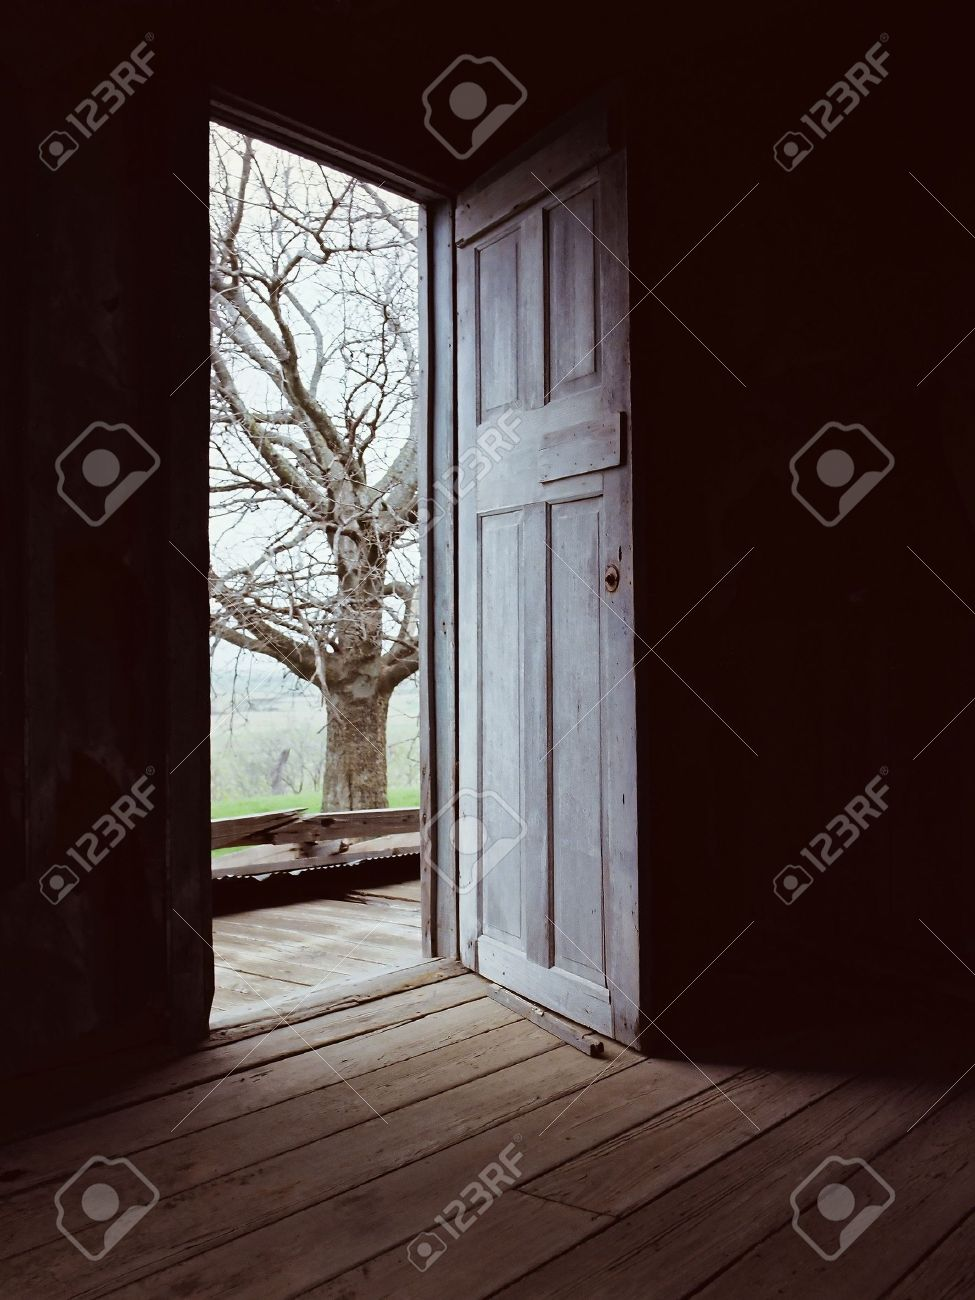 Open Door-Darkness to light-conceptual Stock Photo - 5973358 & Open Door-Darkness To Light-conceptual Stock Photo Picture And ...